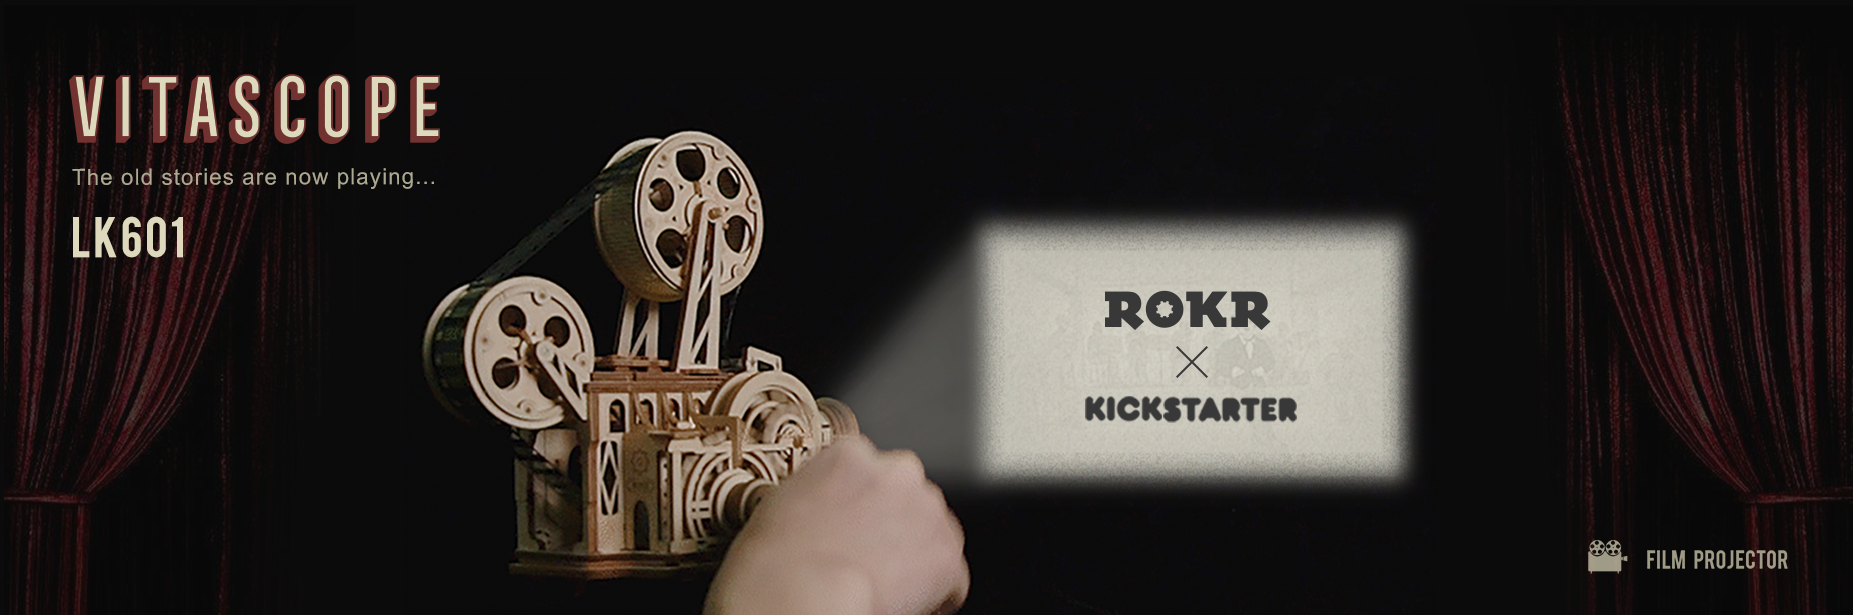 ROKR LK601 Vintage Movie Projector, Now Available on Kickstarter